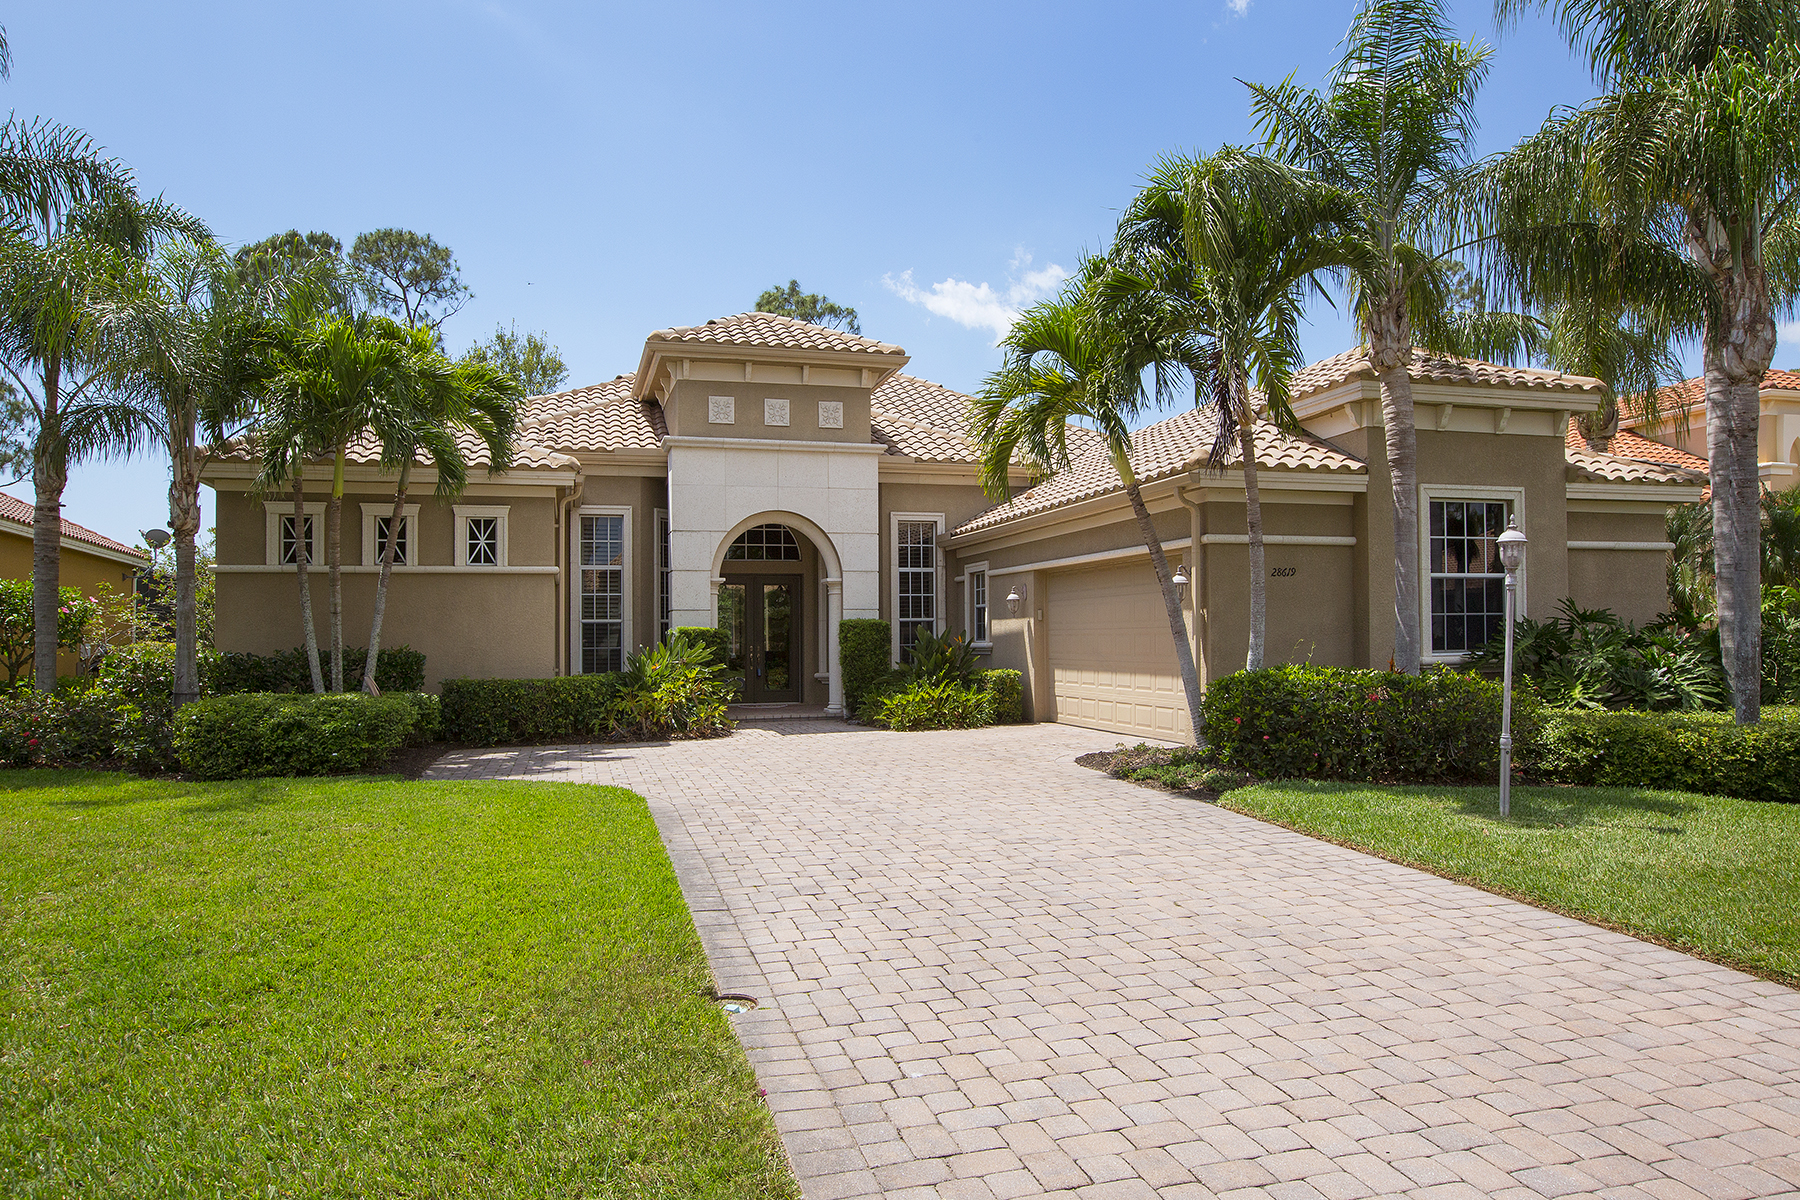 Single Family Homes for Sale at VASARI - AREZZO 28619 Via D Arezzo Drive Bonita Springs, Florida 34135 United States